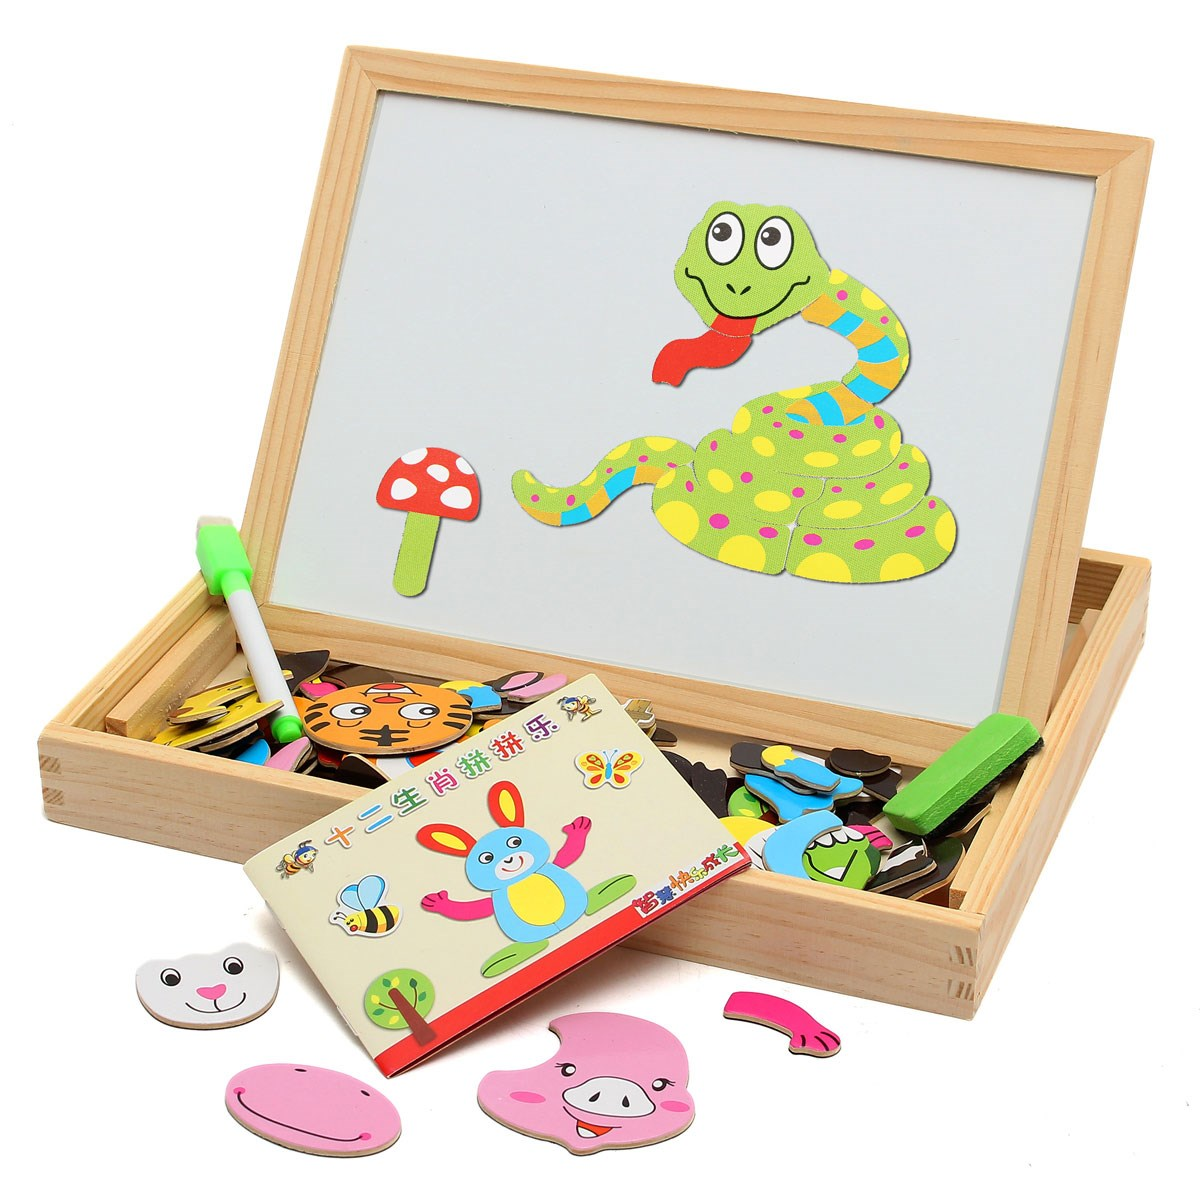 New-Arrival-Drawing-Writing-Board-Magnetic-Board-Puzzle-Double-Easel-Kid-Wooden-Toy-Gift-Children-Intelligence-Development-Toy-1